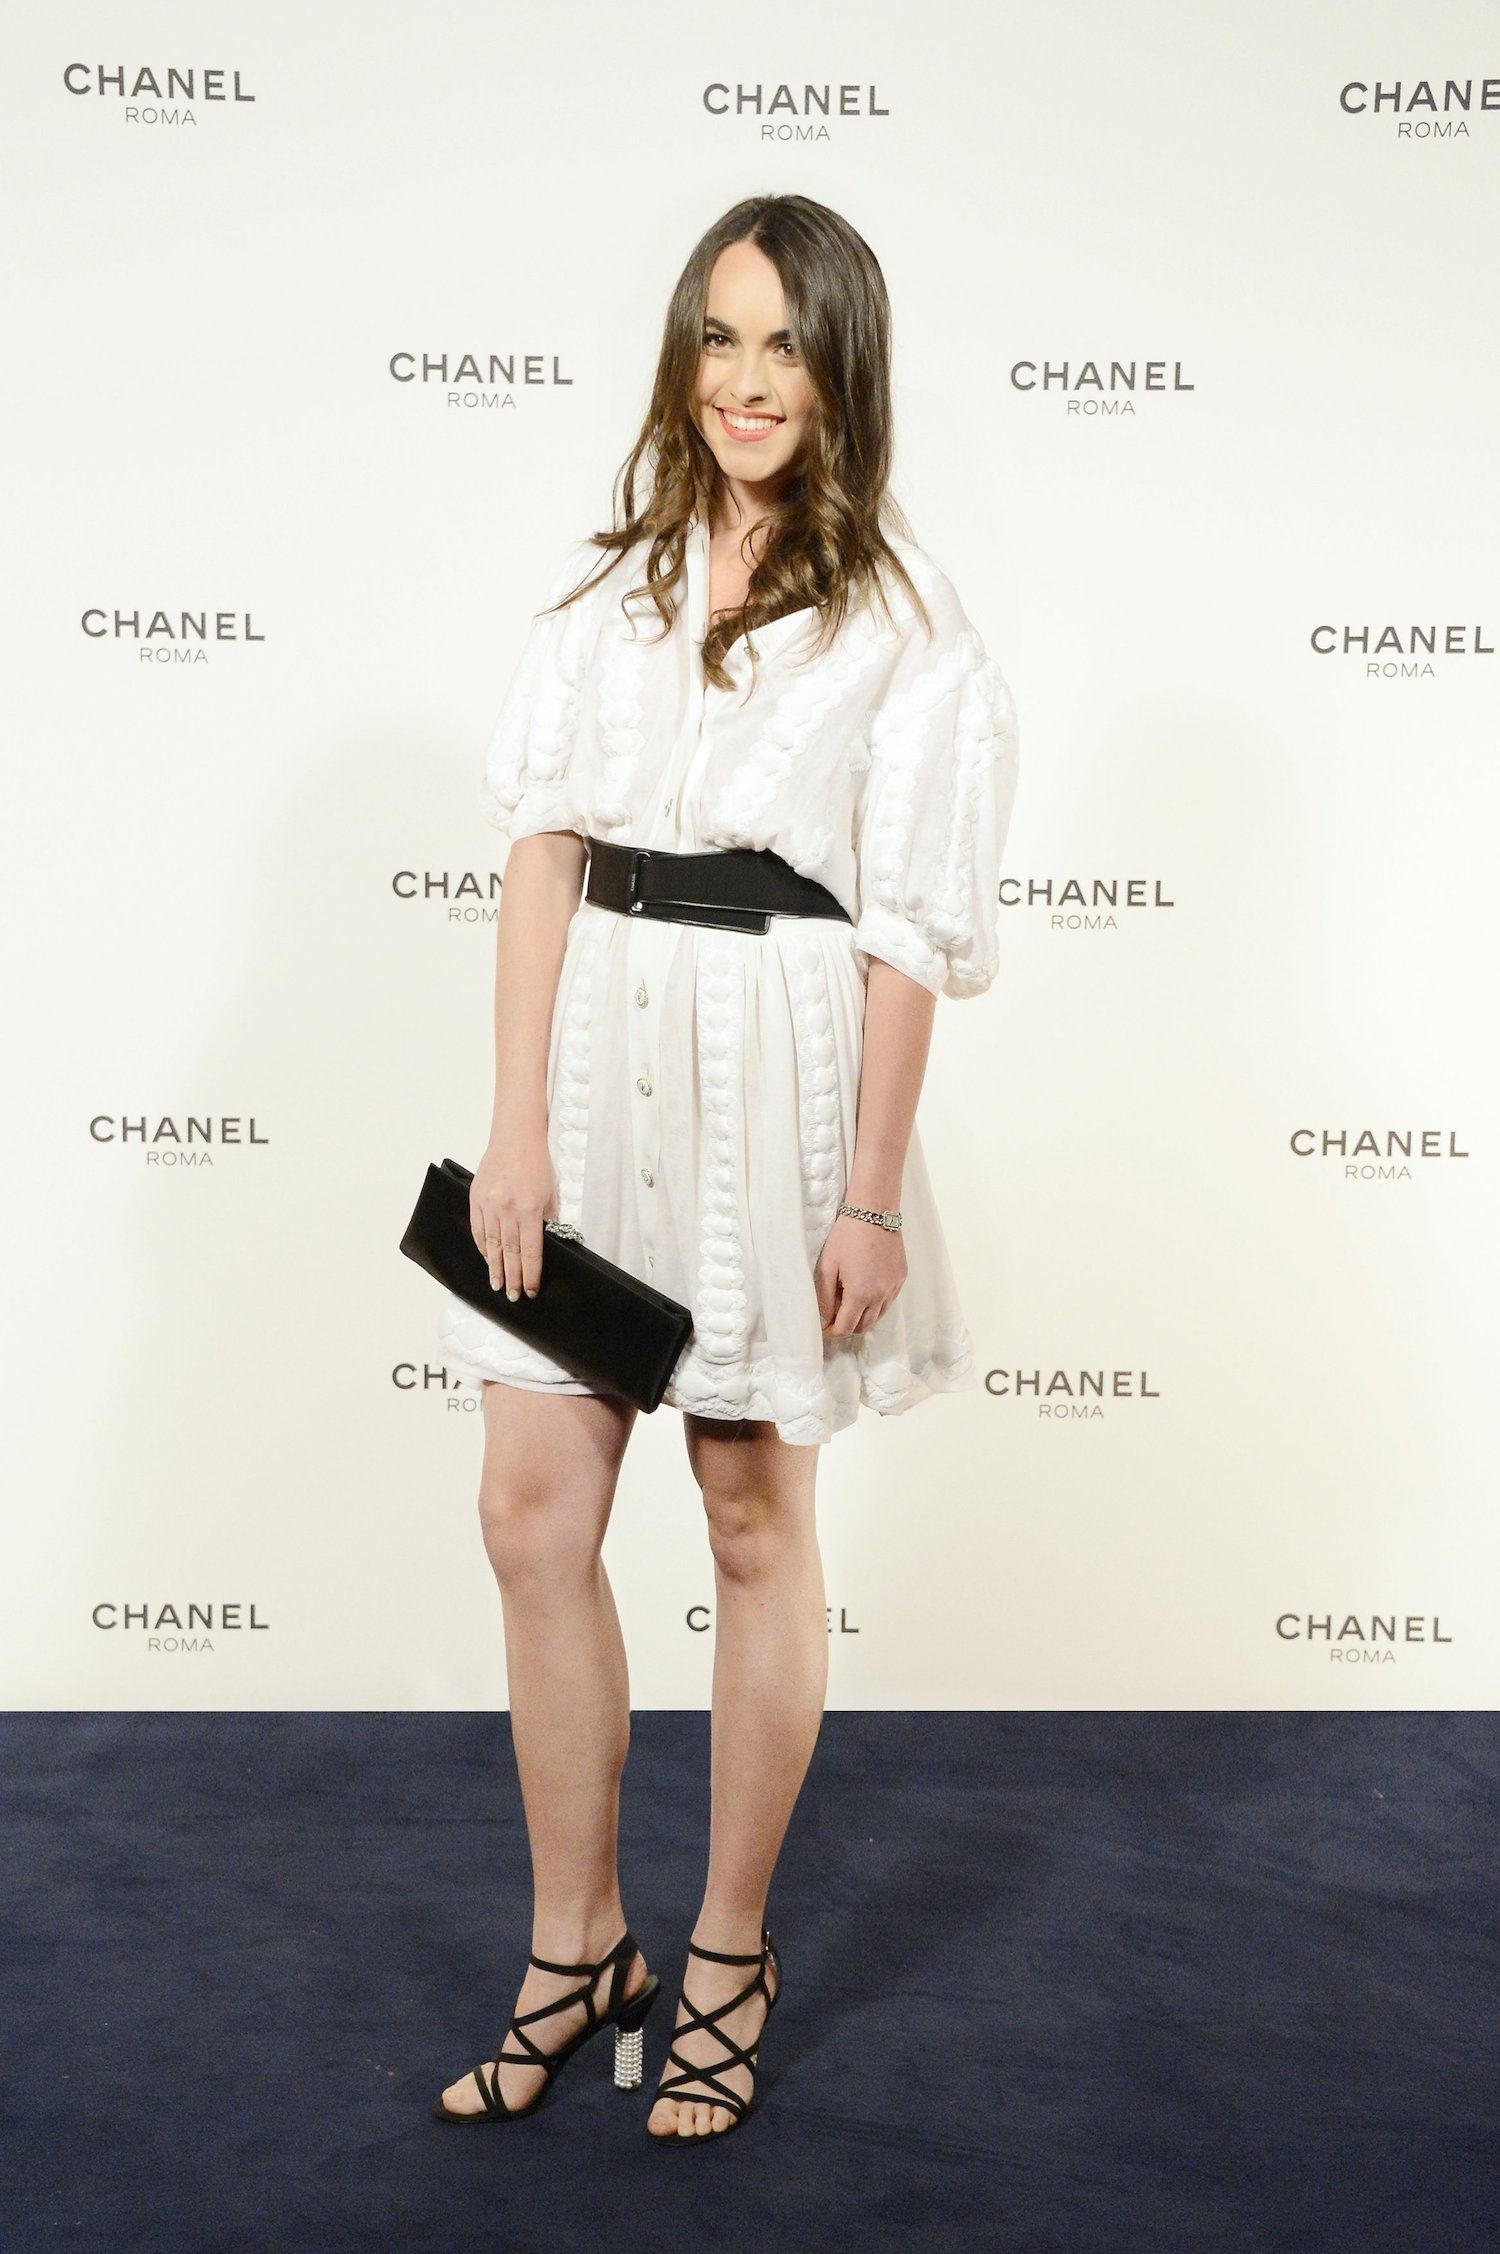 Chanel Rome Party Opening - Melusine Ruspoli